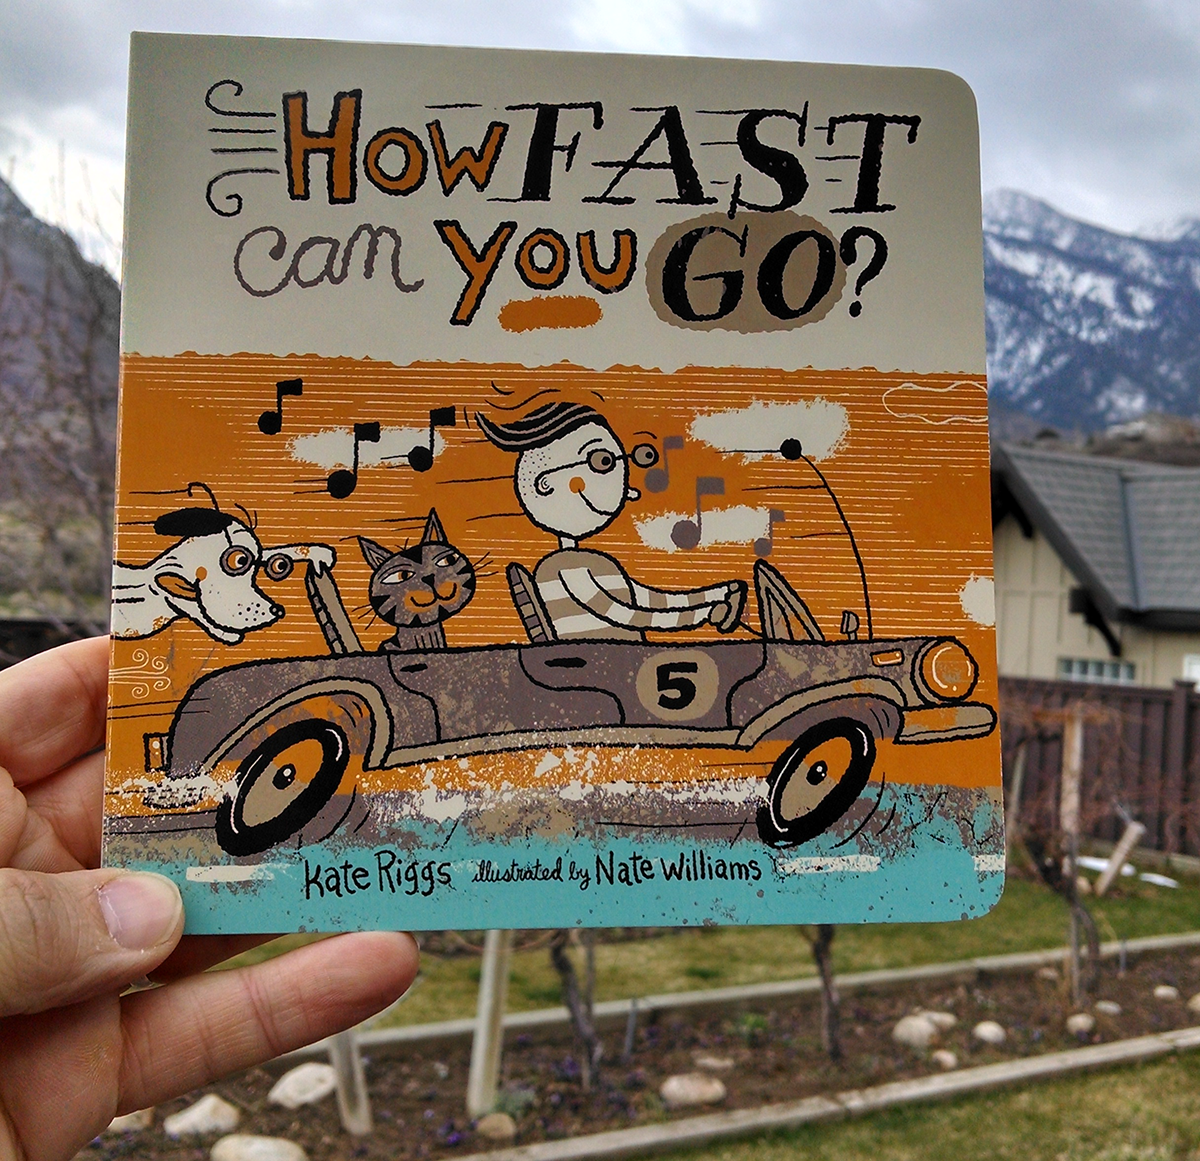 How FAST can you GO? - A board book for young readers published by Creative Editions.AVAILABLE ON AMAZON